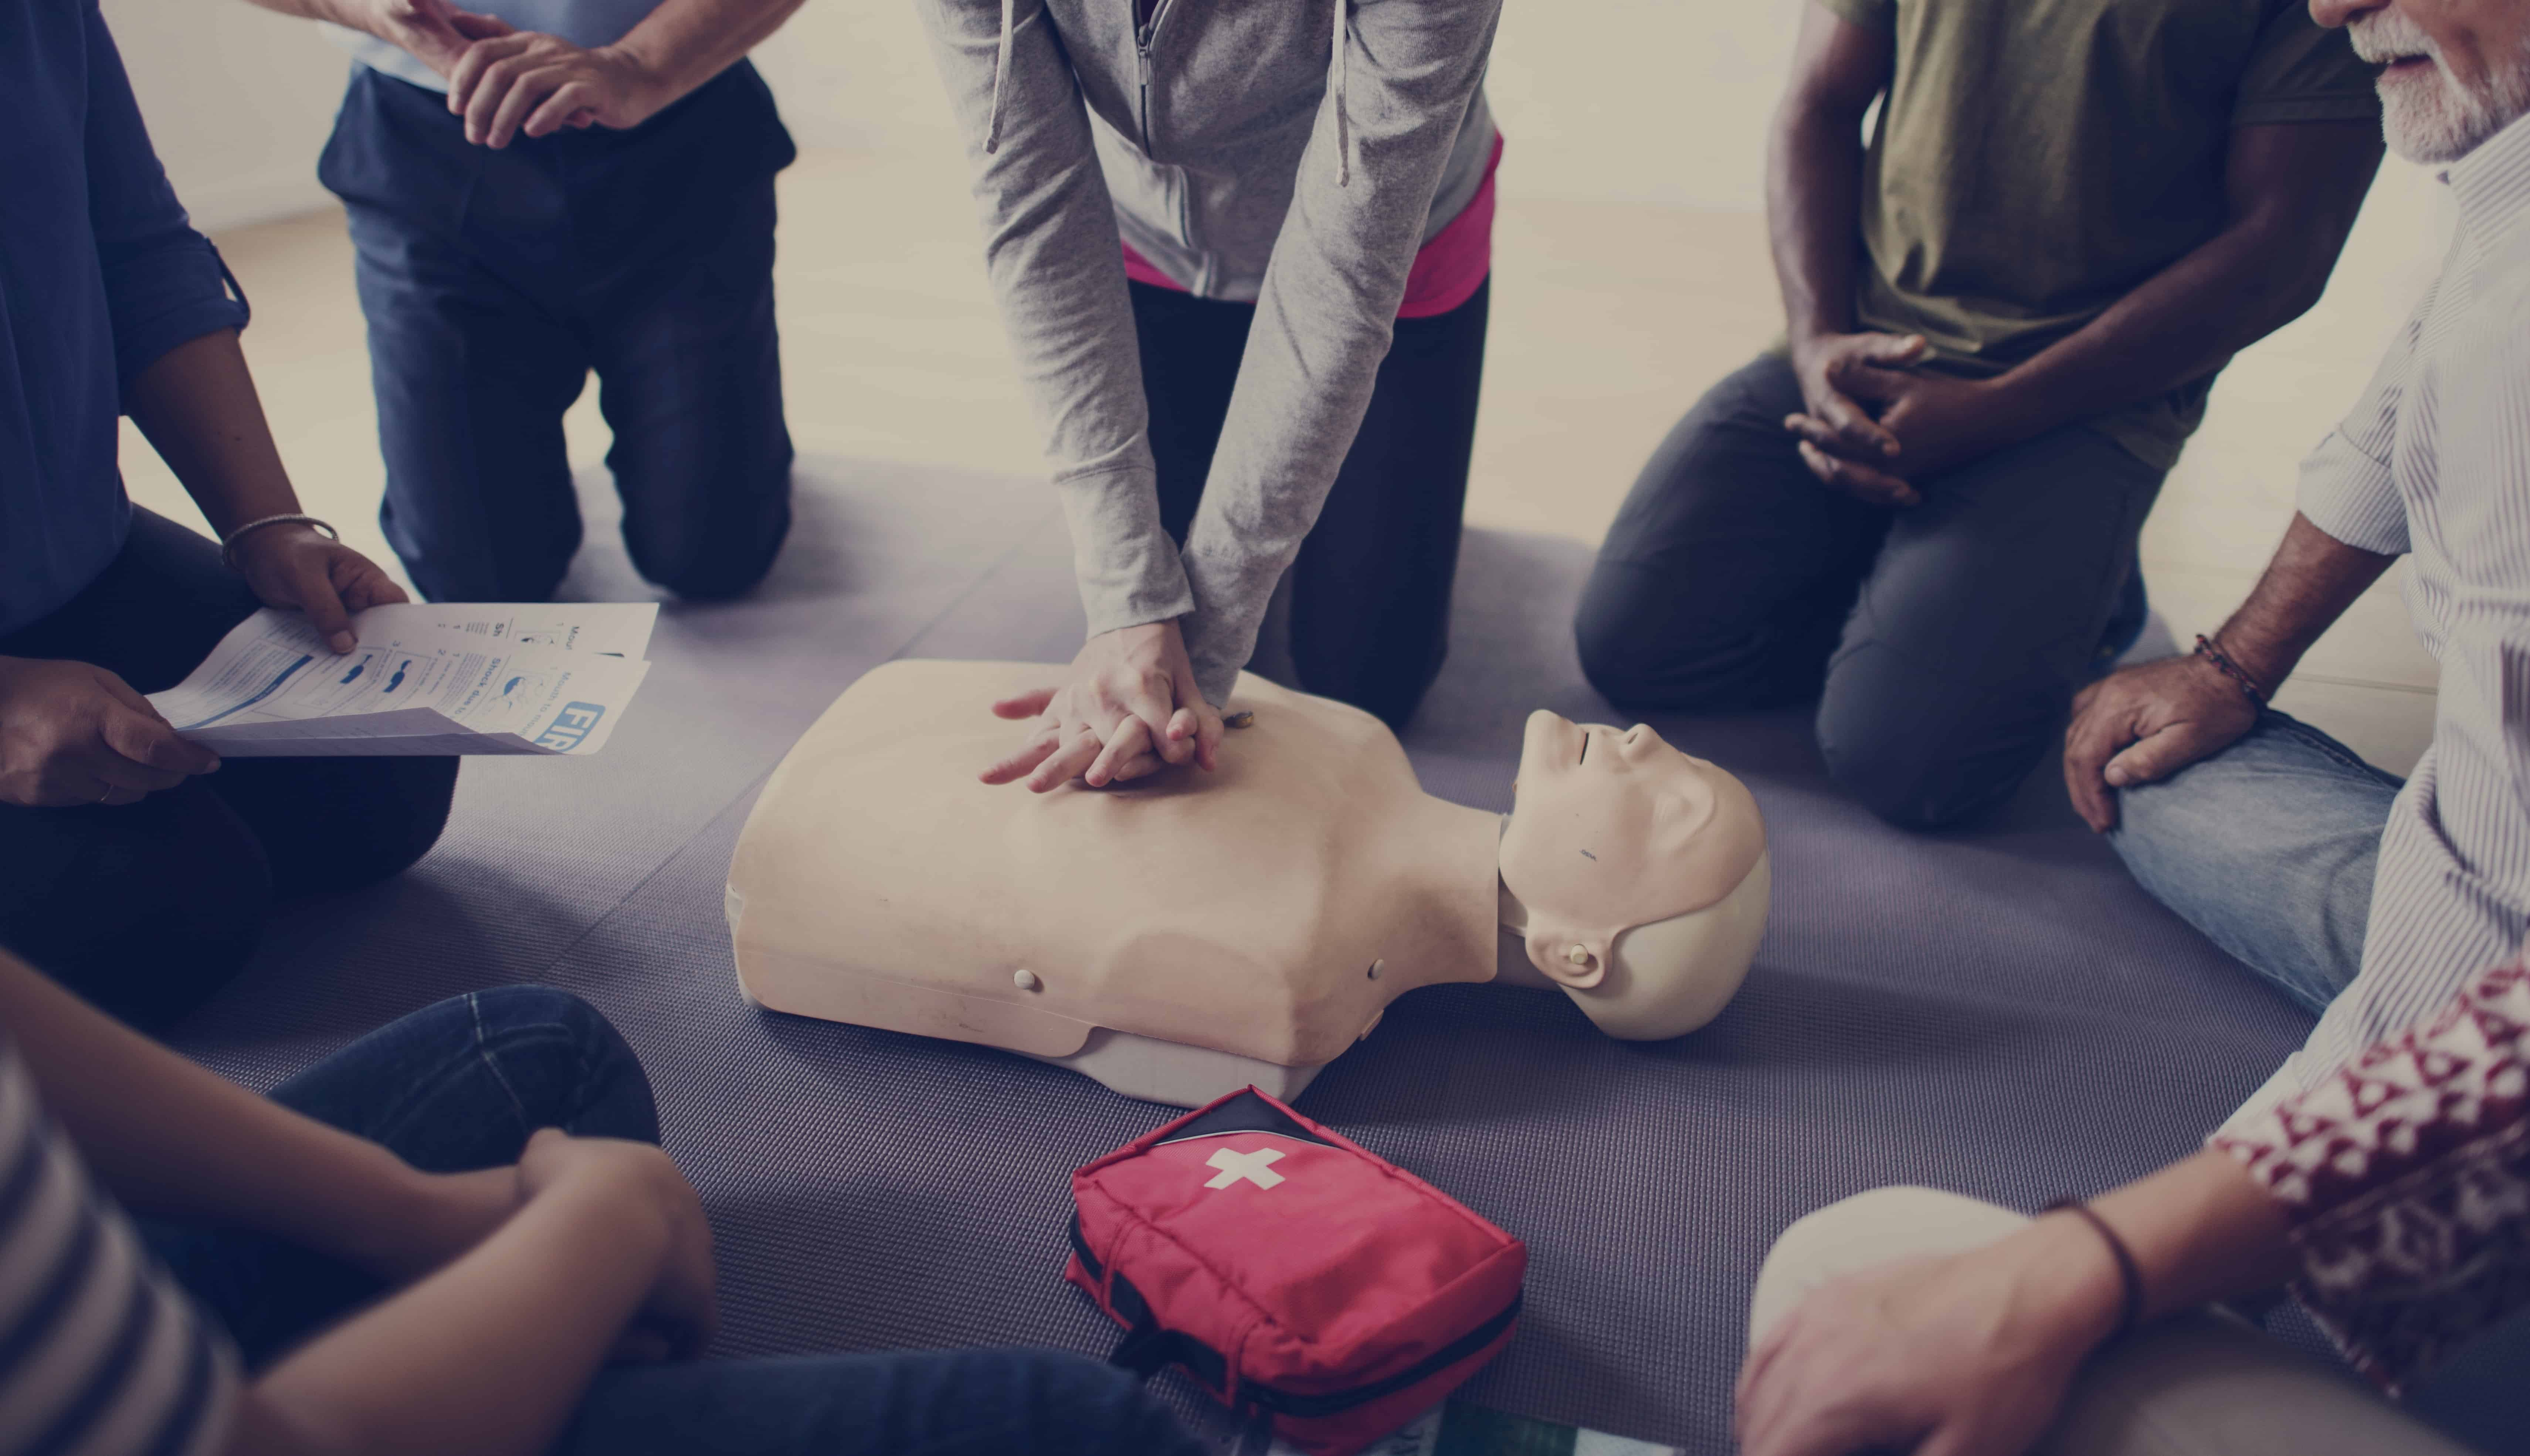 First Aid Training Level 2